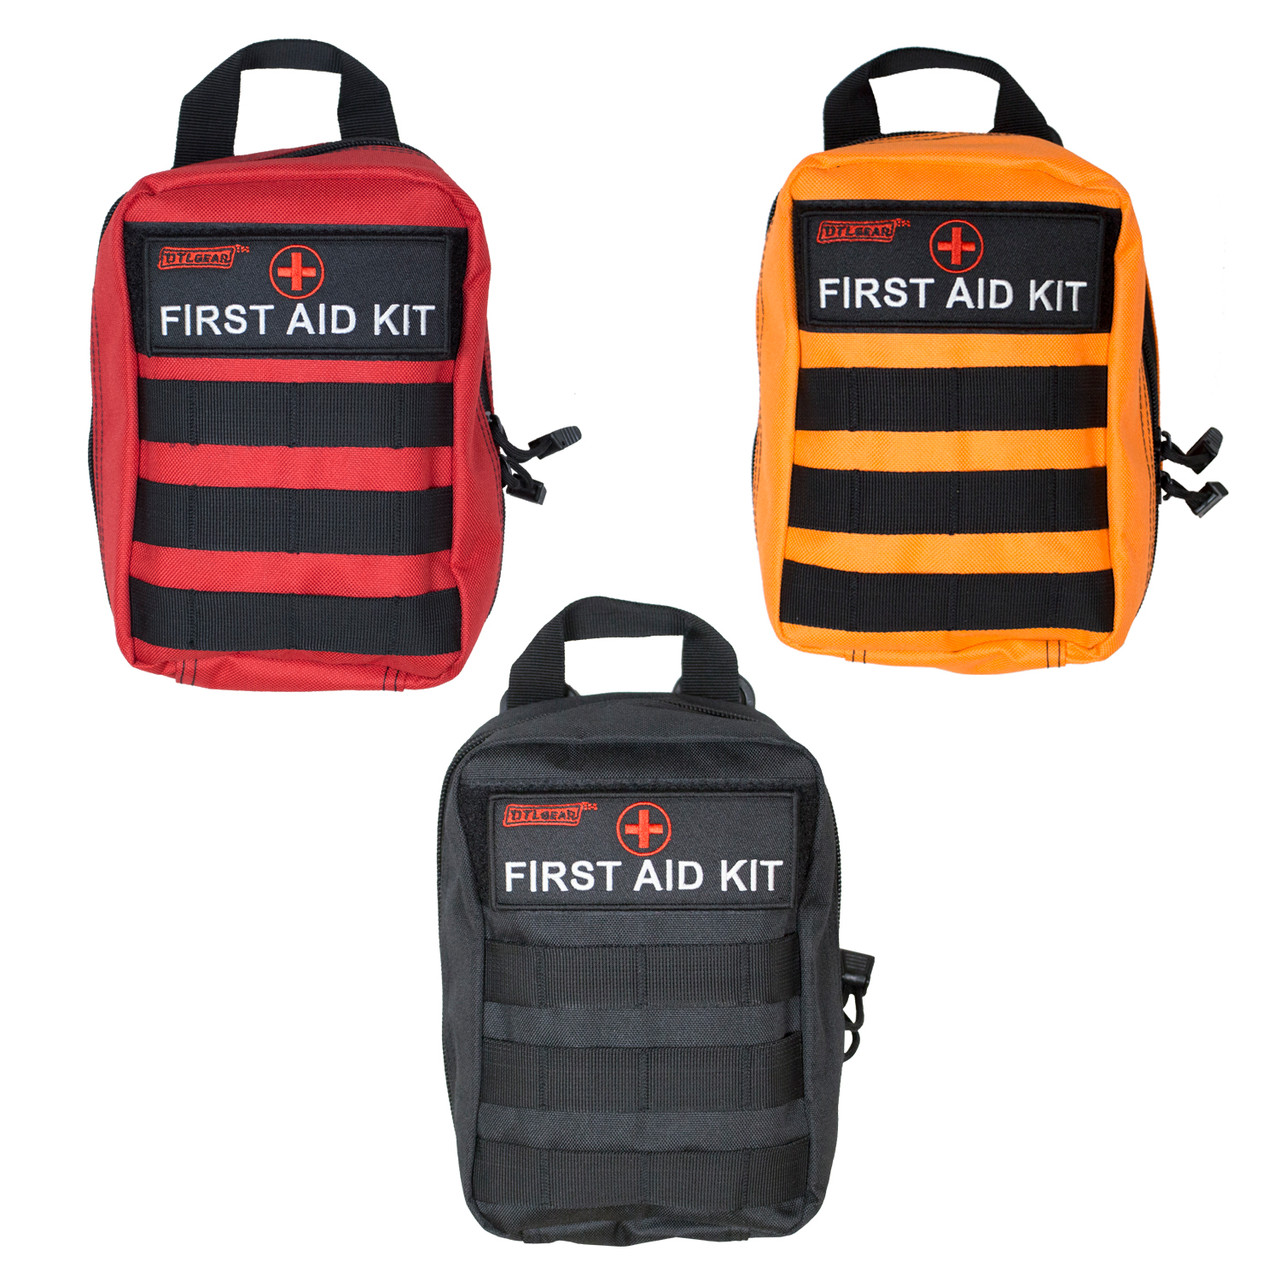 DTLgear High Quality Outdoorsman first aid kit colors